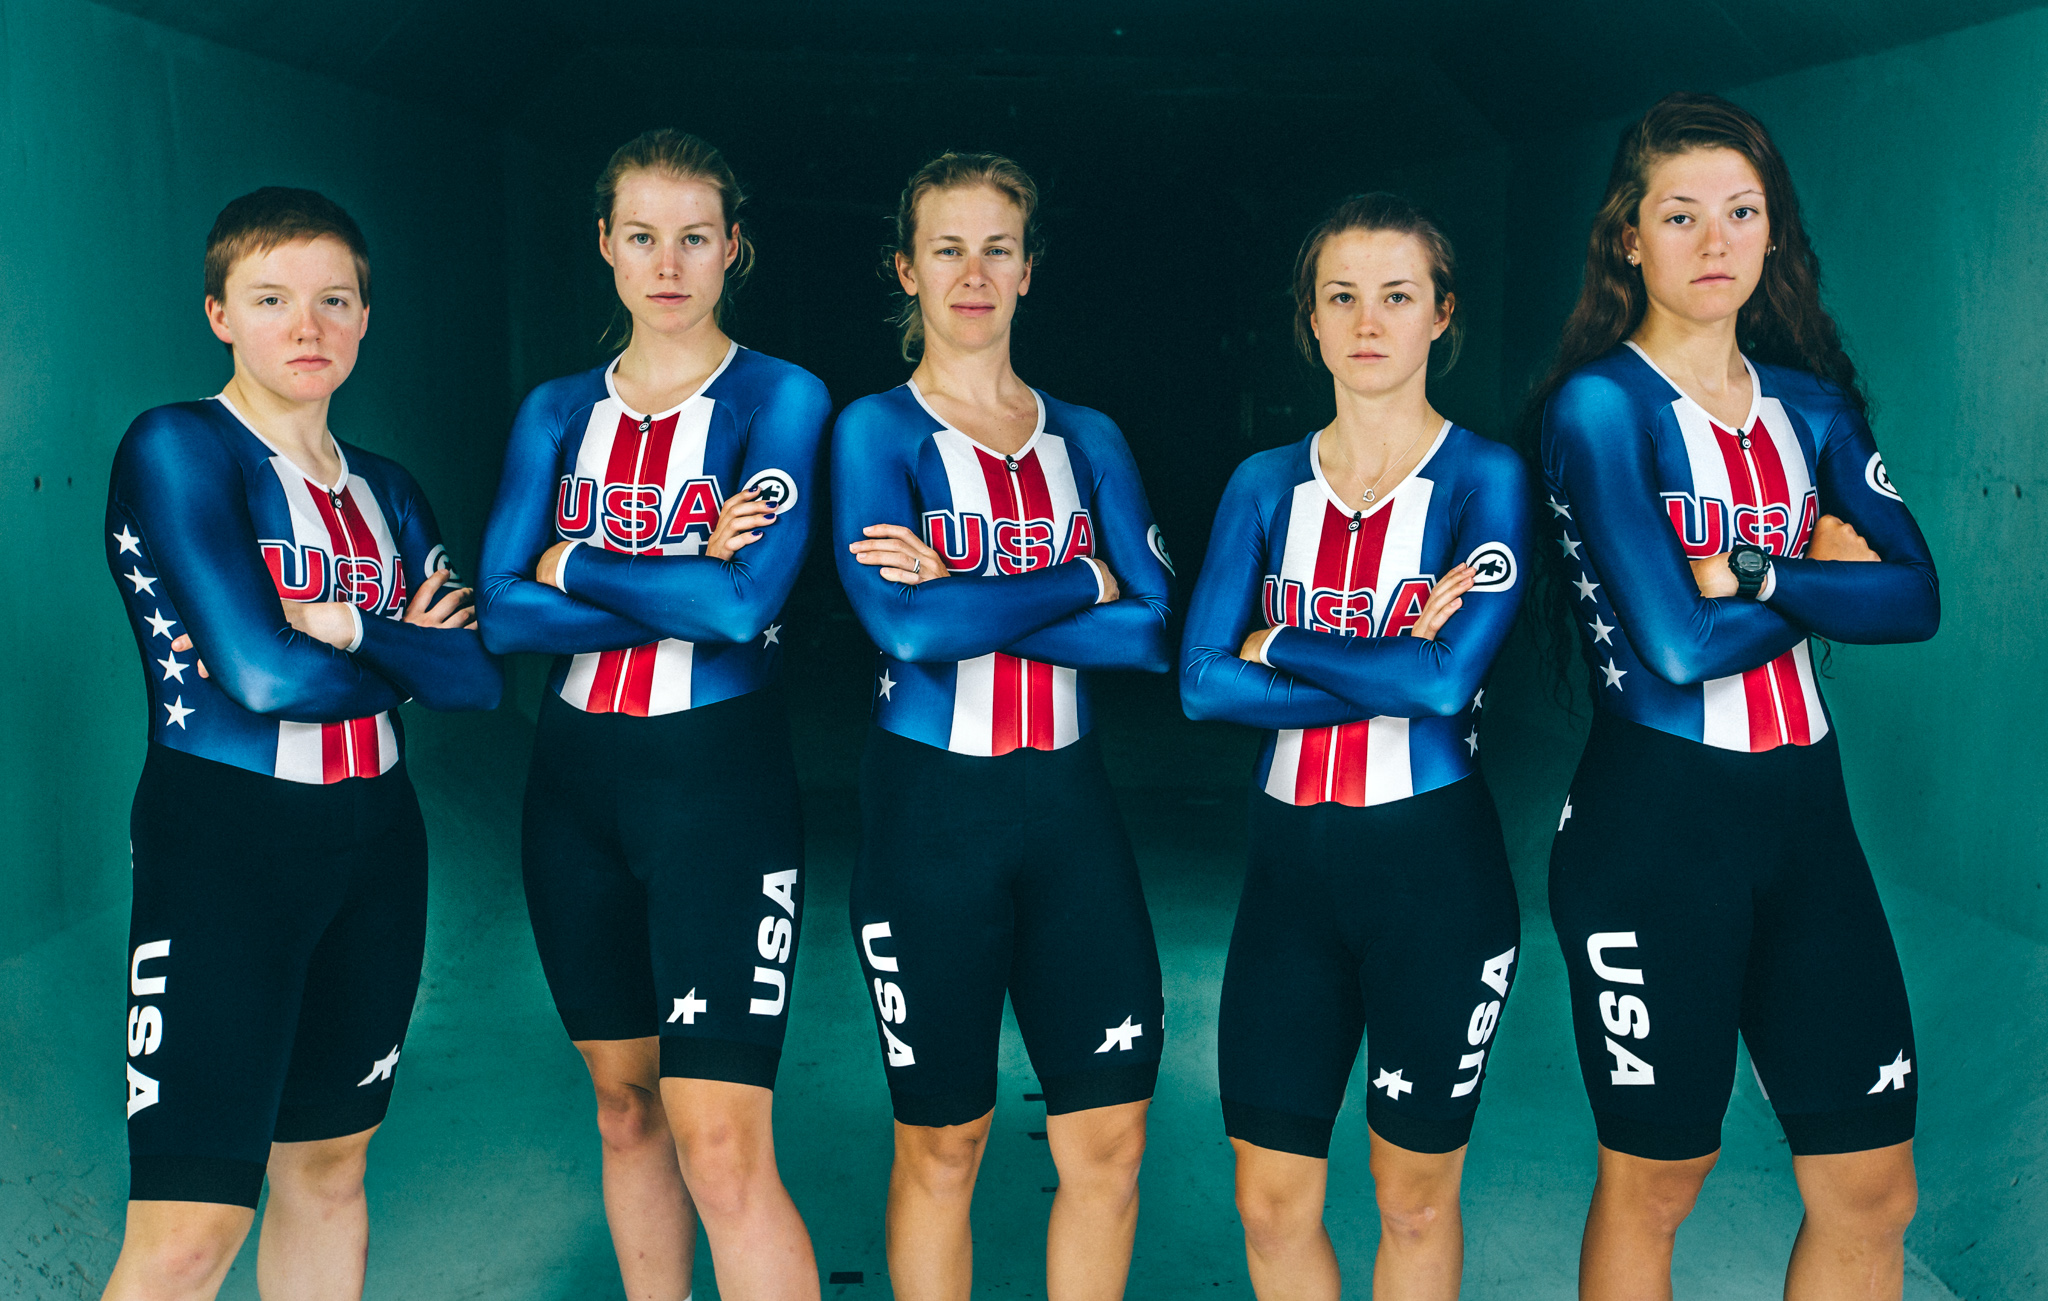 Kit_Karzen_Photographer_Team_USA_Cycling.jpg